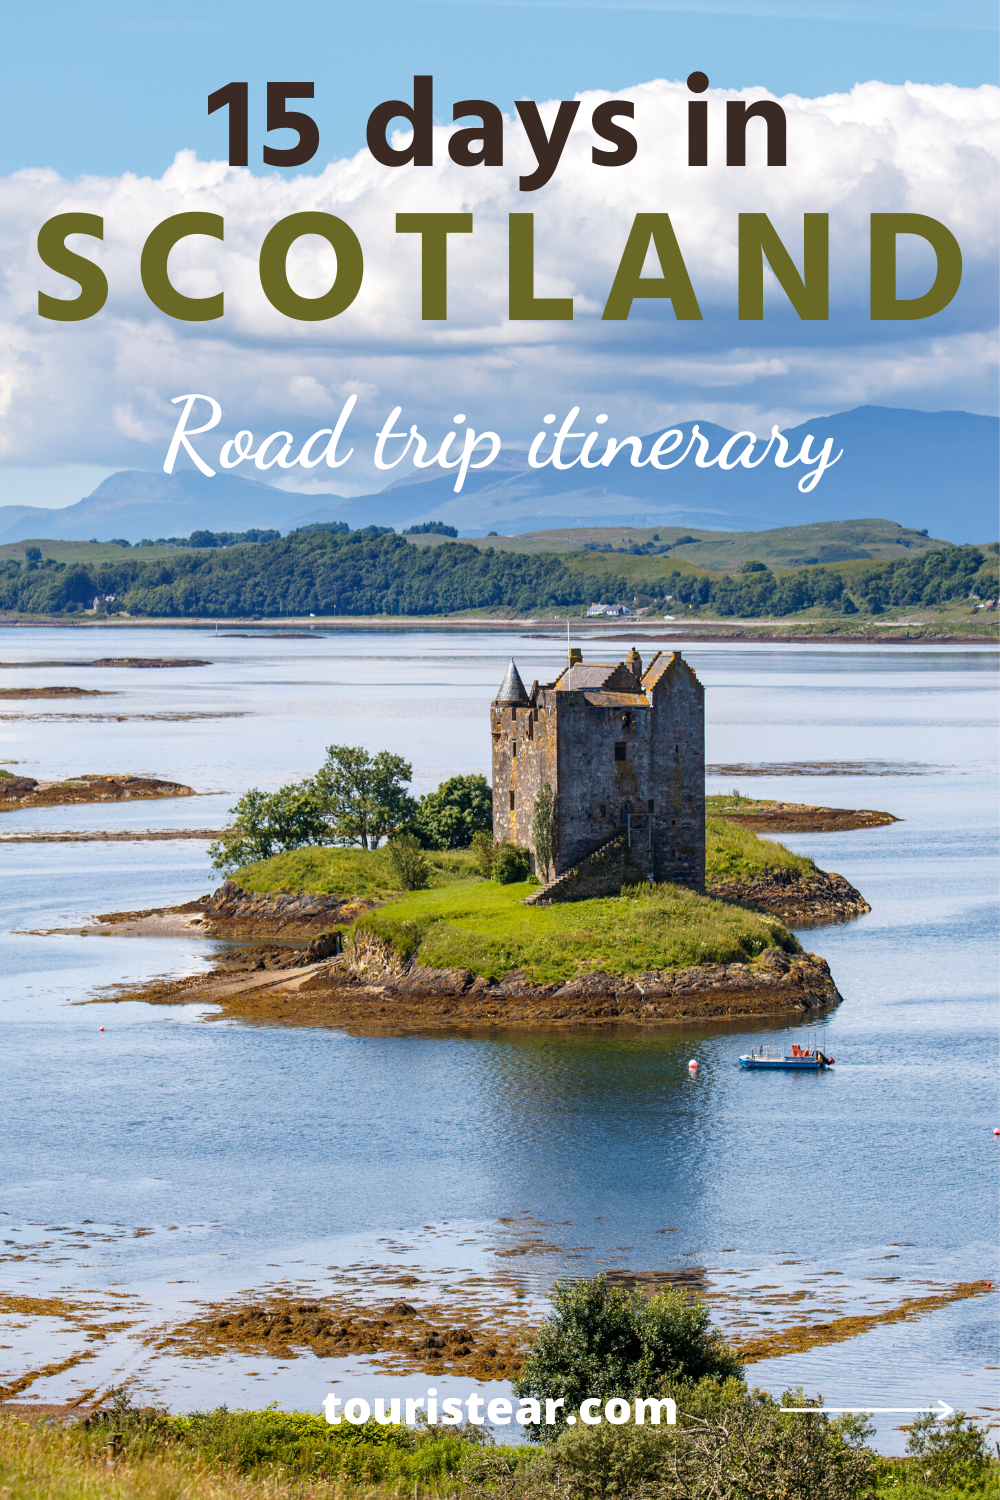 What to see in Scotland in 15 days. Road trip itinerary. Wild camping in Scotland, where to stay, best things to do.  #Scotland #roadtrip